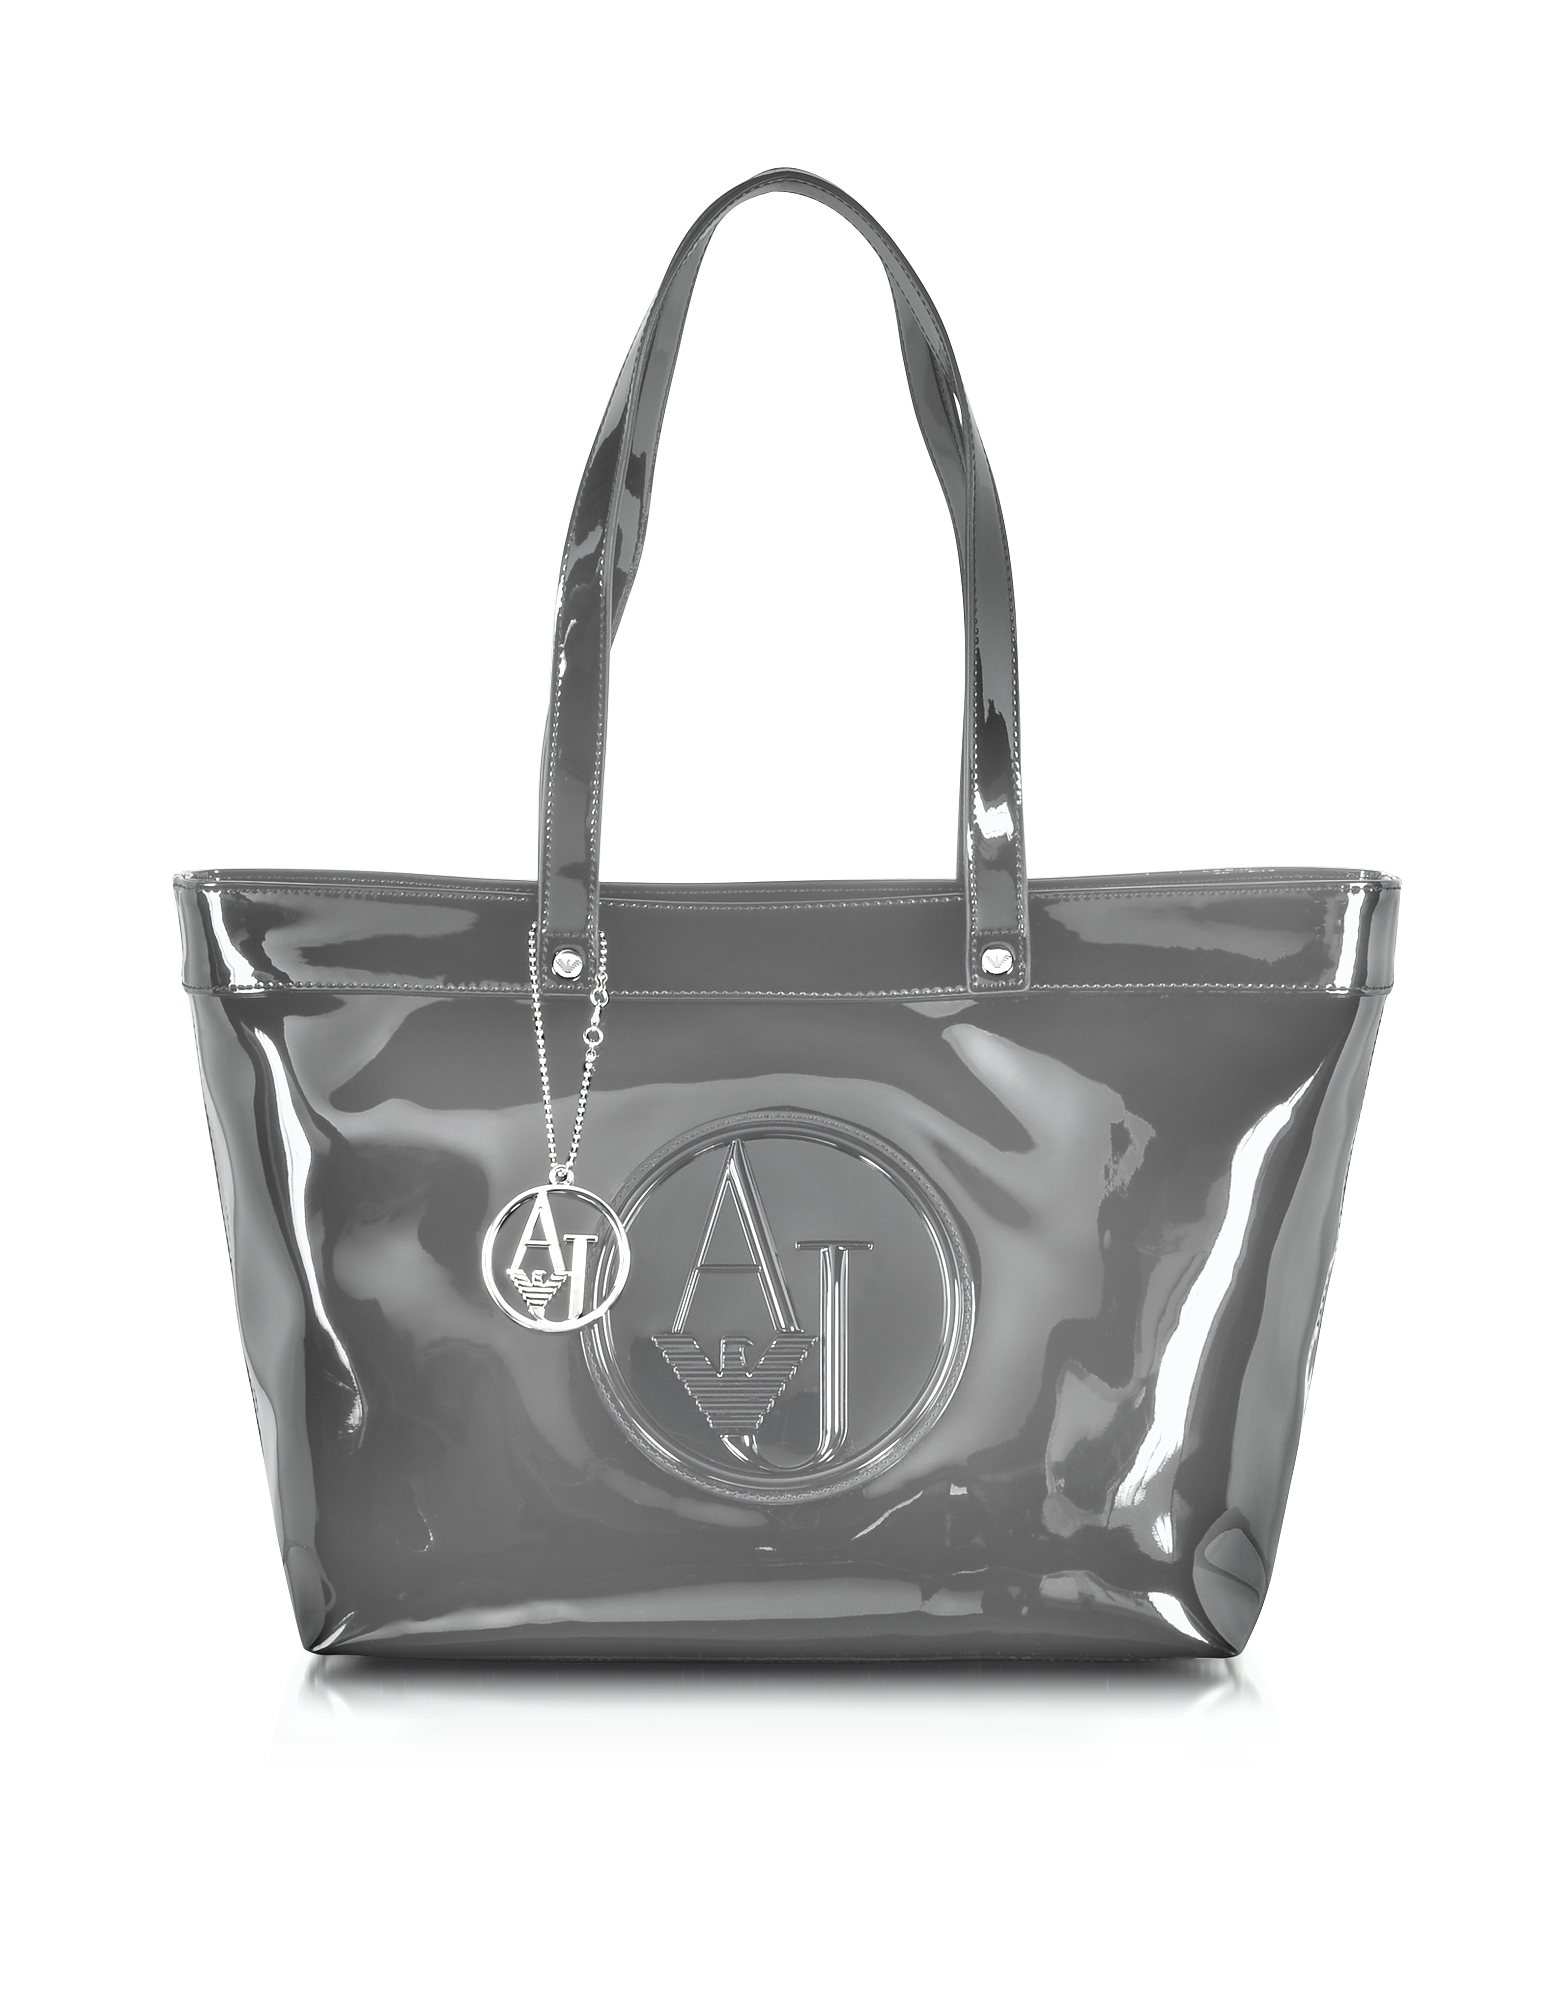 Armani Jeans Handbags, Gray Eco Patent Leather Large Tote Bag